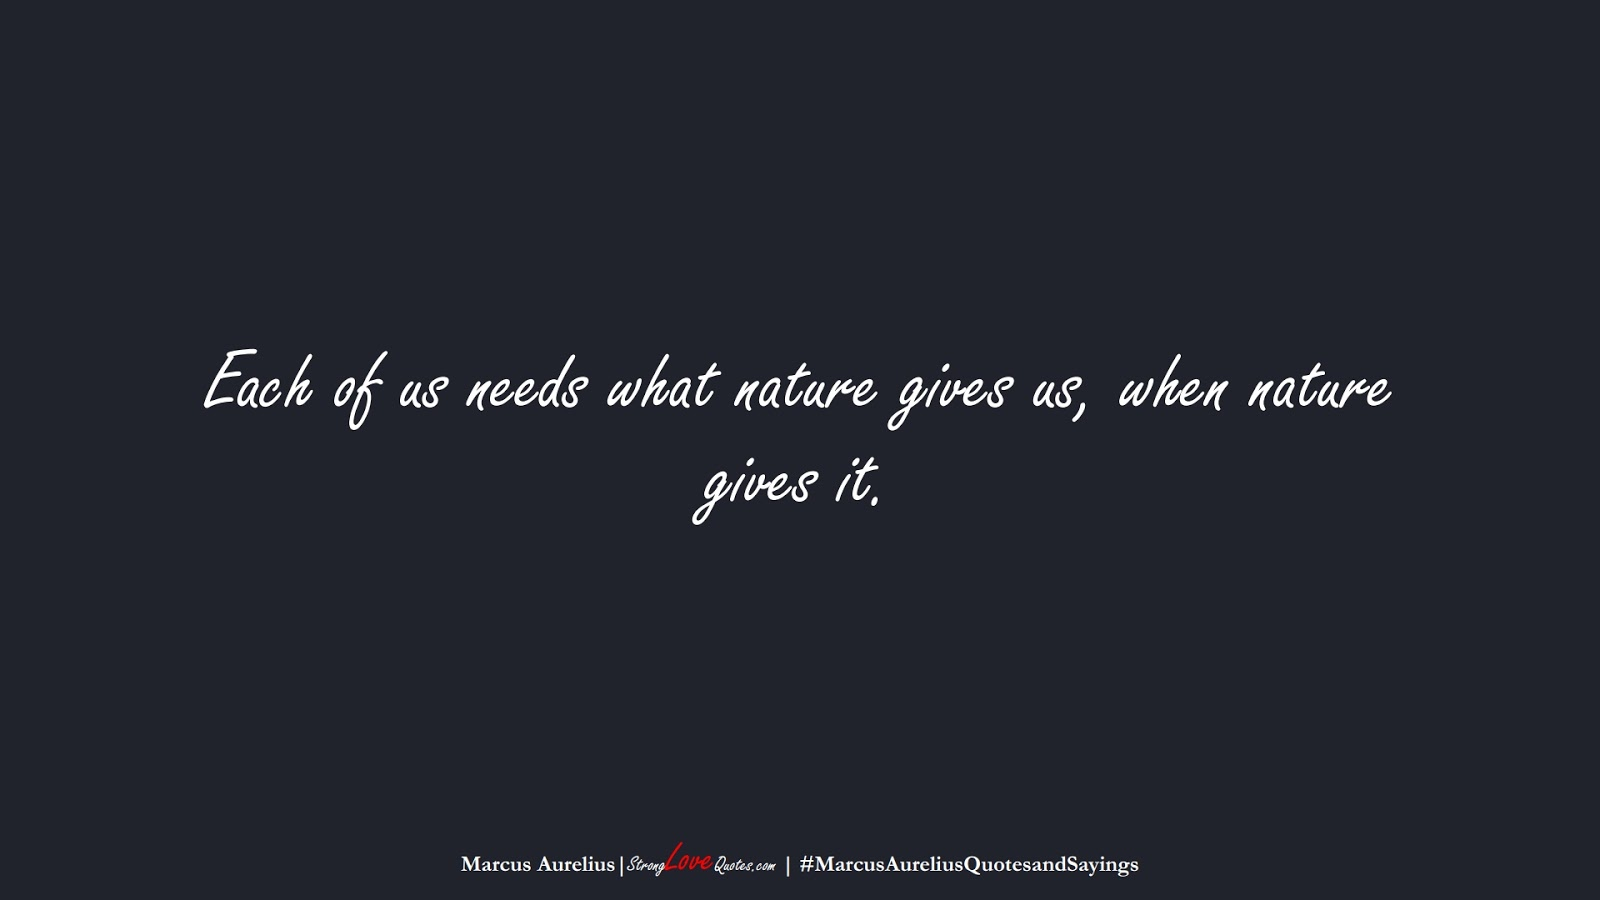 Each of us needs what nature gives us, when nature gives it. (Marcus Aurelius);  #MarcusAureliusQuotesandSayings